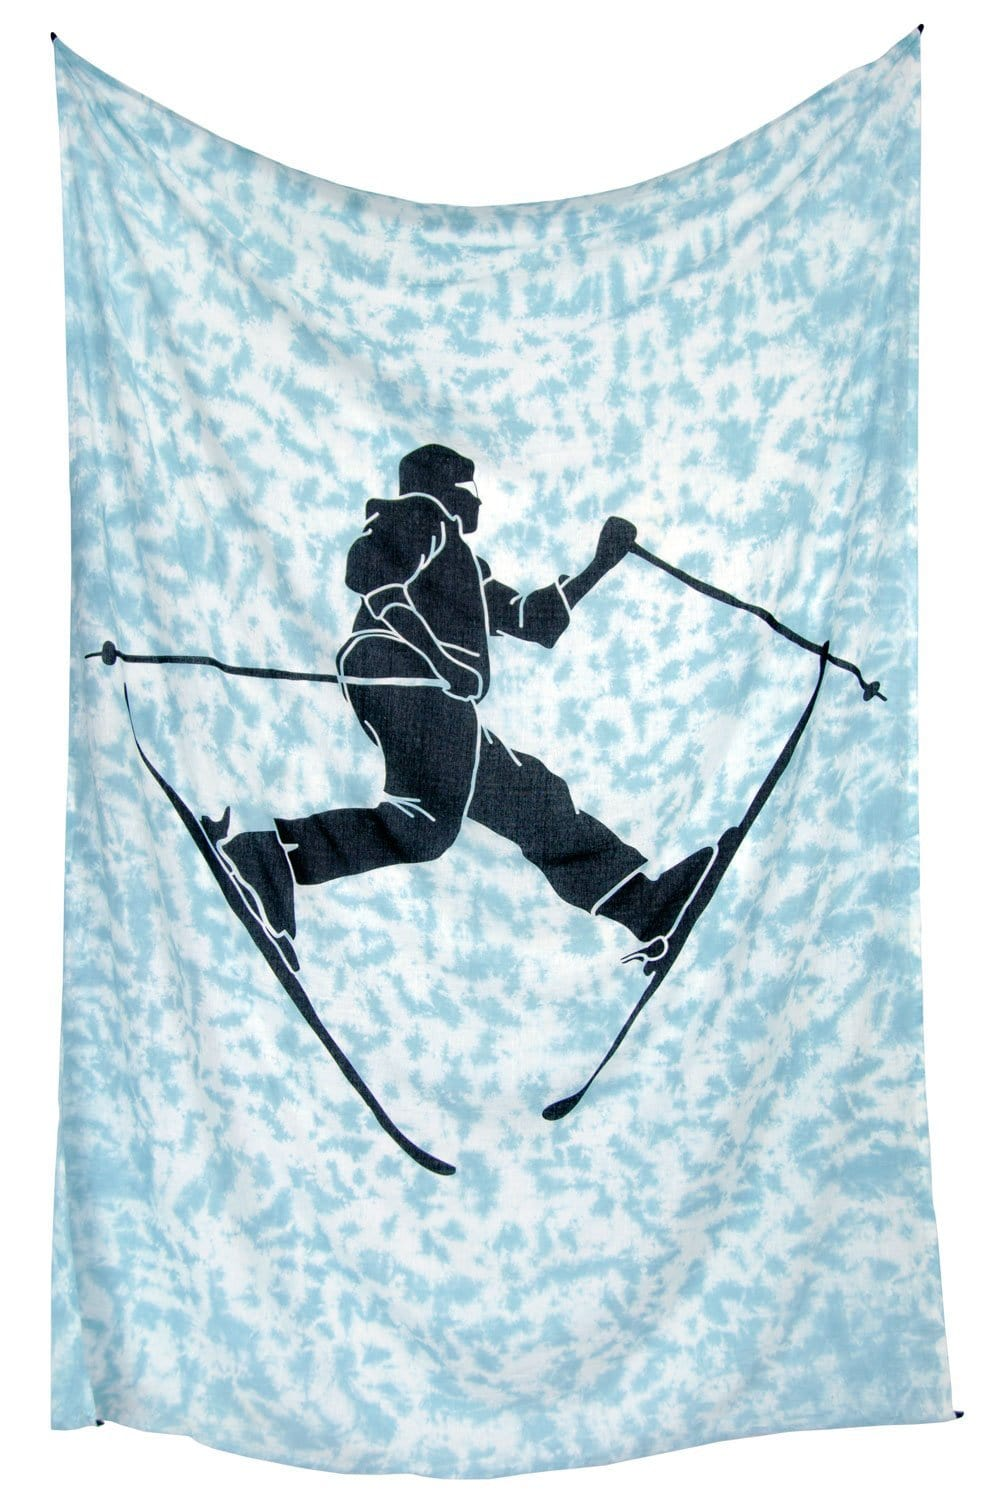 Tapestries Freestyle Skier - Tie-dye - Tapestry 011441